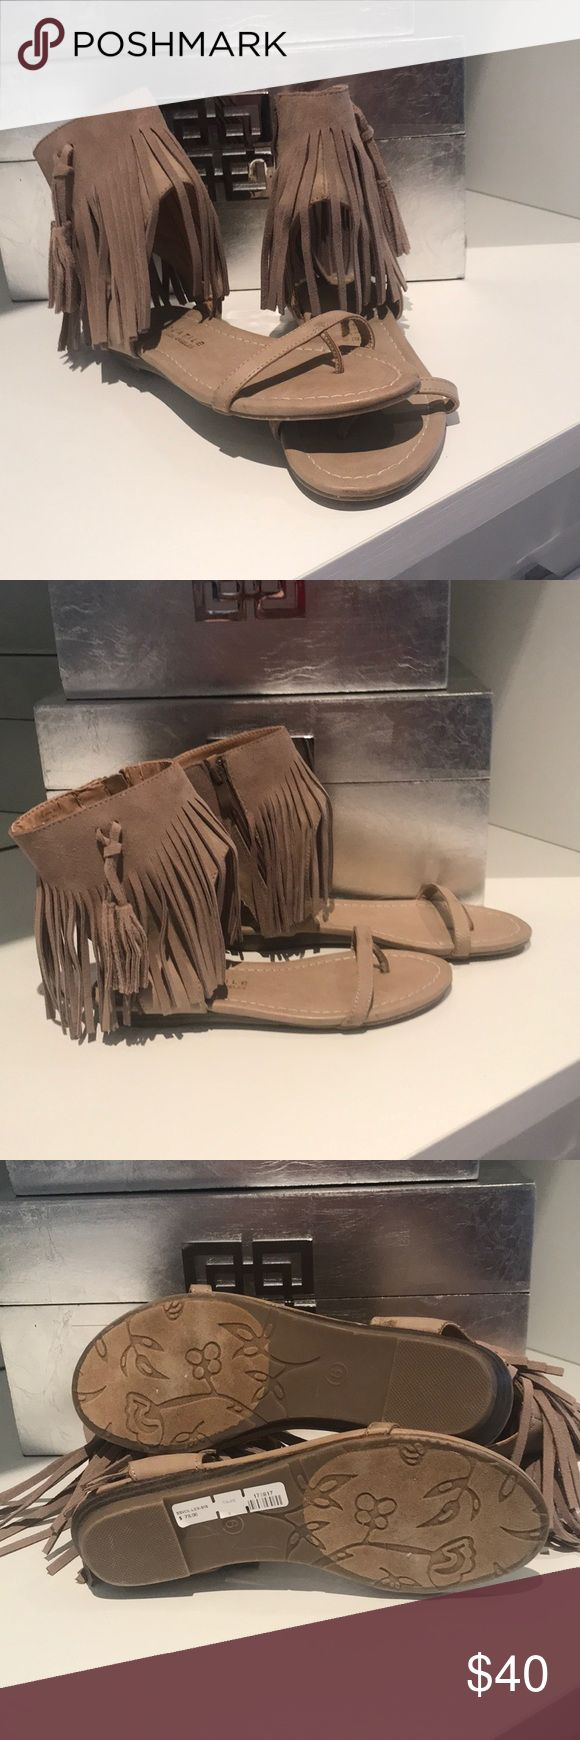 Fringe zip up sandals Suede neutral fringe ankle zip up with tassels. Single strap with big toe support  slight wedge heel and cushioned soles. New with tags very volatile Shoes Sandals